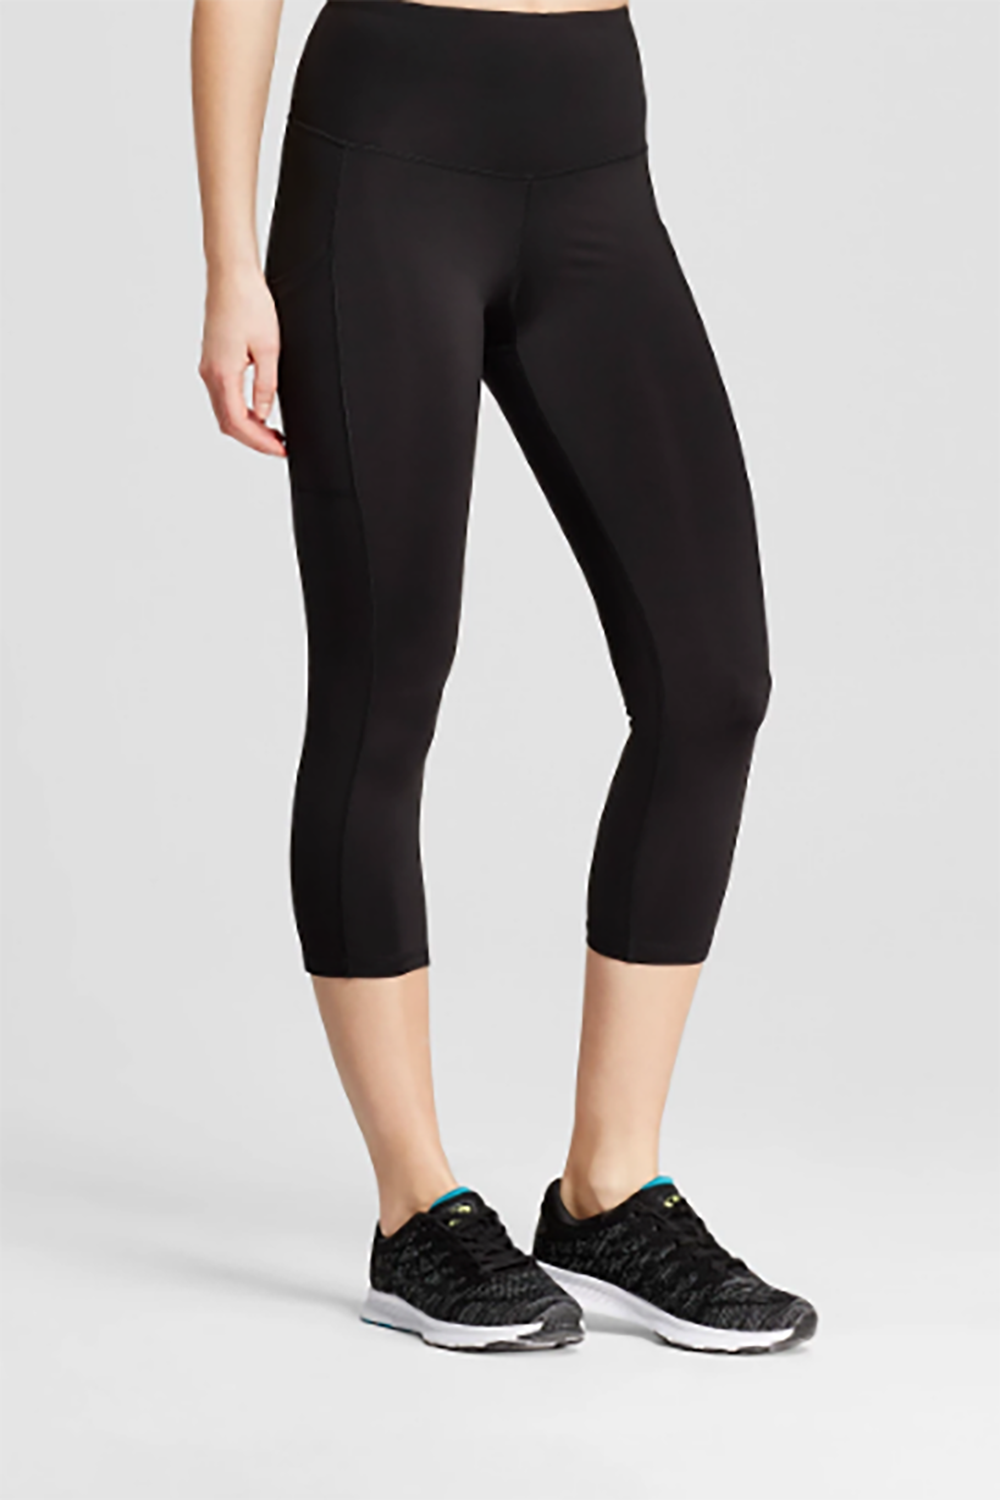 64058ce256586f 11 Best High Waisted Leggings 2019 - Comfy Workout Pants for Every Budget